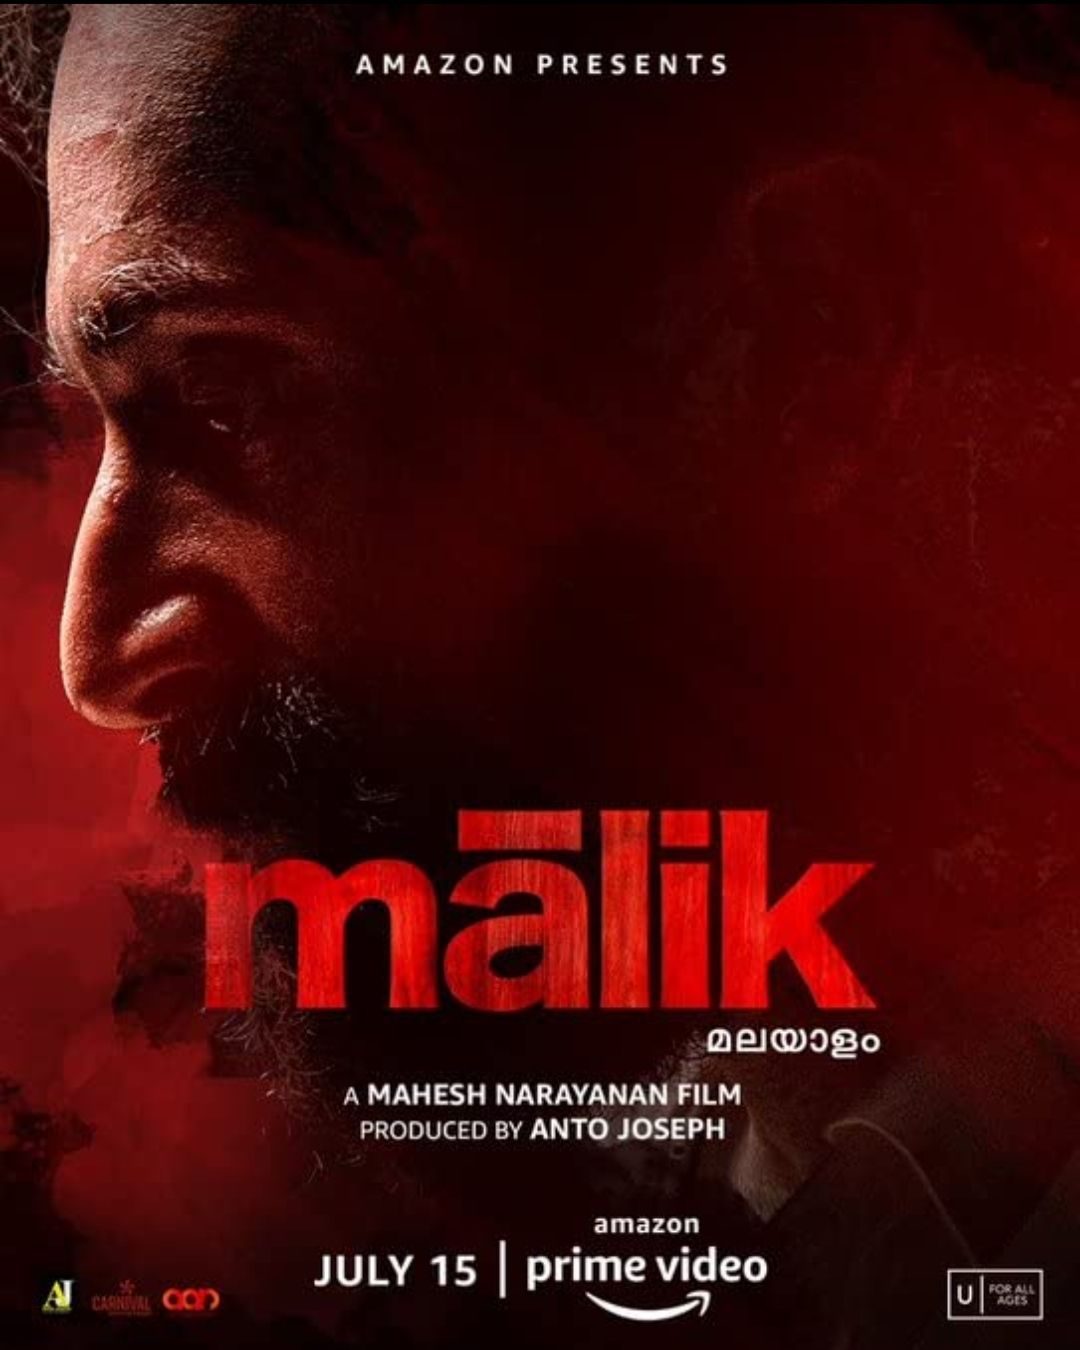 Malik Movie Public Review: FilmyOne.com >Give Thumbs Up For Fahadh Faasil And Mahesh Narayan's 'Malik', Photos, Videos, Full Movie Watch Online Free Download Leaked By Tamilrockers, Download Torrent Telegram File Link